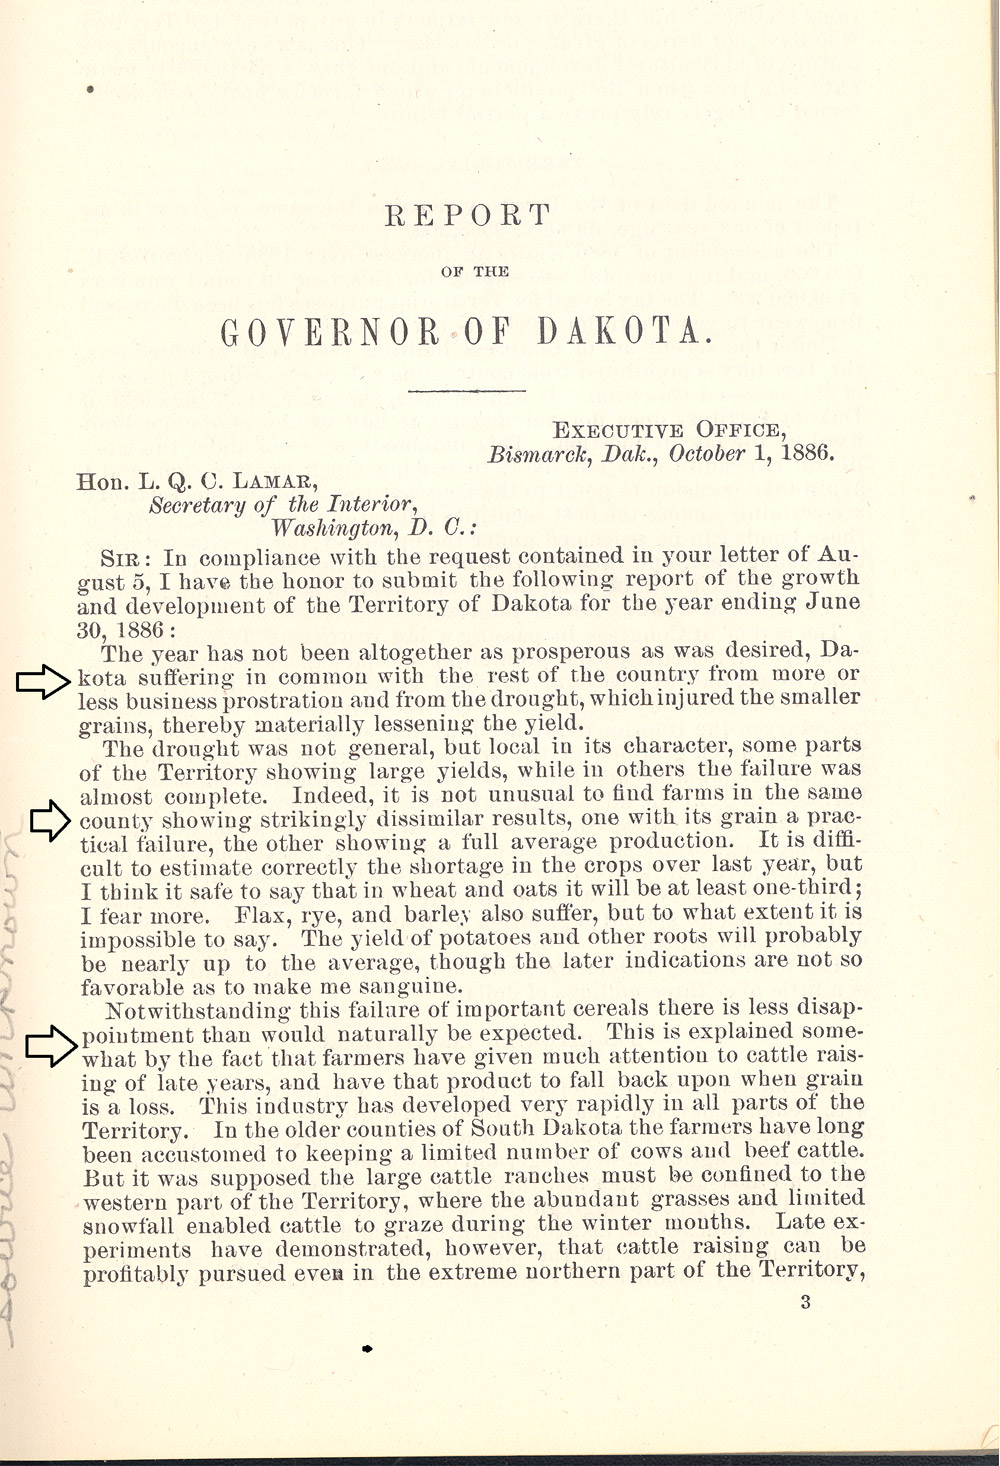 "The governor of Dakota Territory reported to the Secretary of the Interior each year because territorial government was under the regulation of the Department of the Interior.  In 1886, Governor Gilbert Pierce reported that a severe drought had affected crops in 1886.  He suggested that the drought had encouraged cattle raising in the northern part of Dakota Territory.   Governor Pierce's annual report included a chart showing how many people in 1886 had filed on public land under the Homestead, Timber Culture, or Pre-emption laws.  In 1887, Governor Louis K. Church presented a similar chart in his annual report to the Secretary of the Interior.  His data demonstrates that the drought had caused a dramatic reduction in the number of new filings on federal land.   Church shows an increase in the number of ""proofs"" on Homestead and Timber Culture claims.  This is because many of the claimants who arrived during the boom had qualified to receive the deed to their land following five years of required residence.  Church's data also shows an increase in the number of Homestead claims that were ""commuted,"" or paid for in cash.  When they paid for their claims, settlers could sell the land or mortgage it for cash."